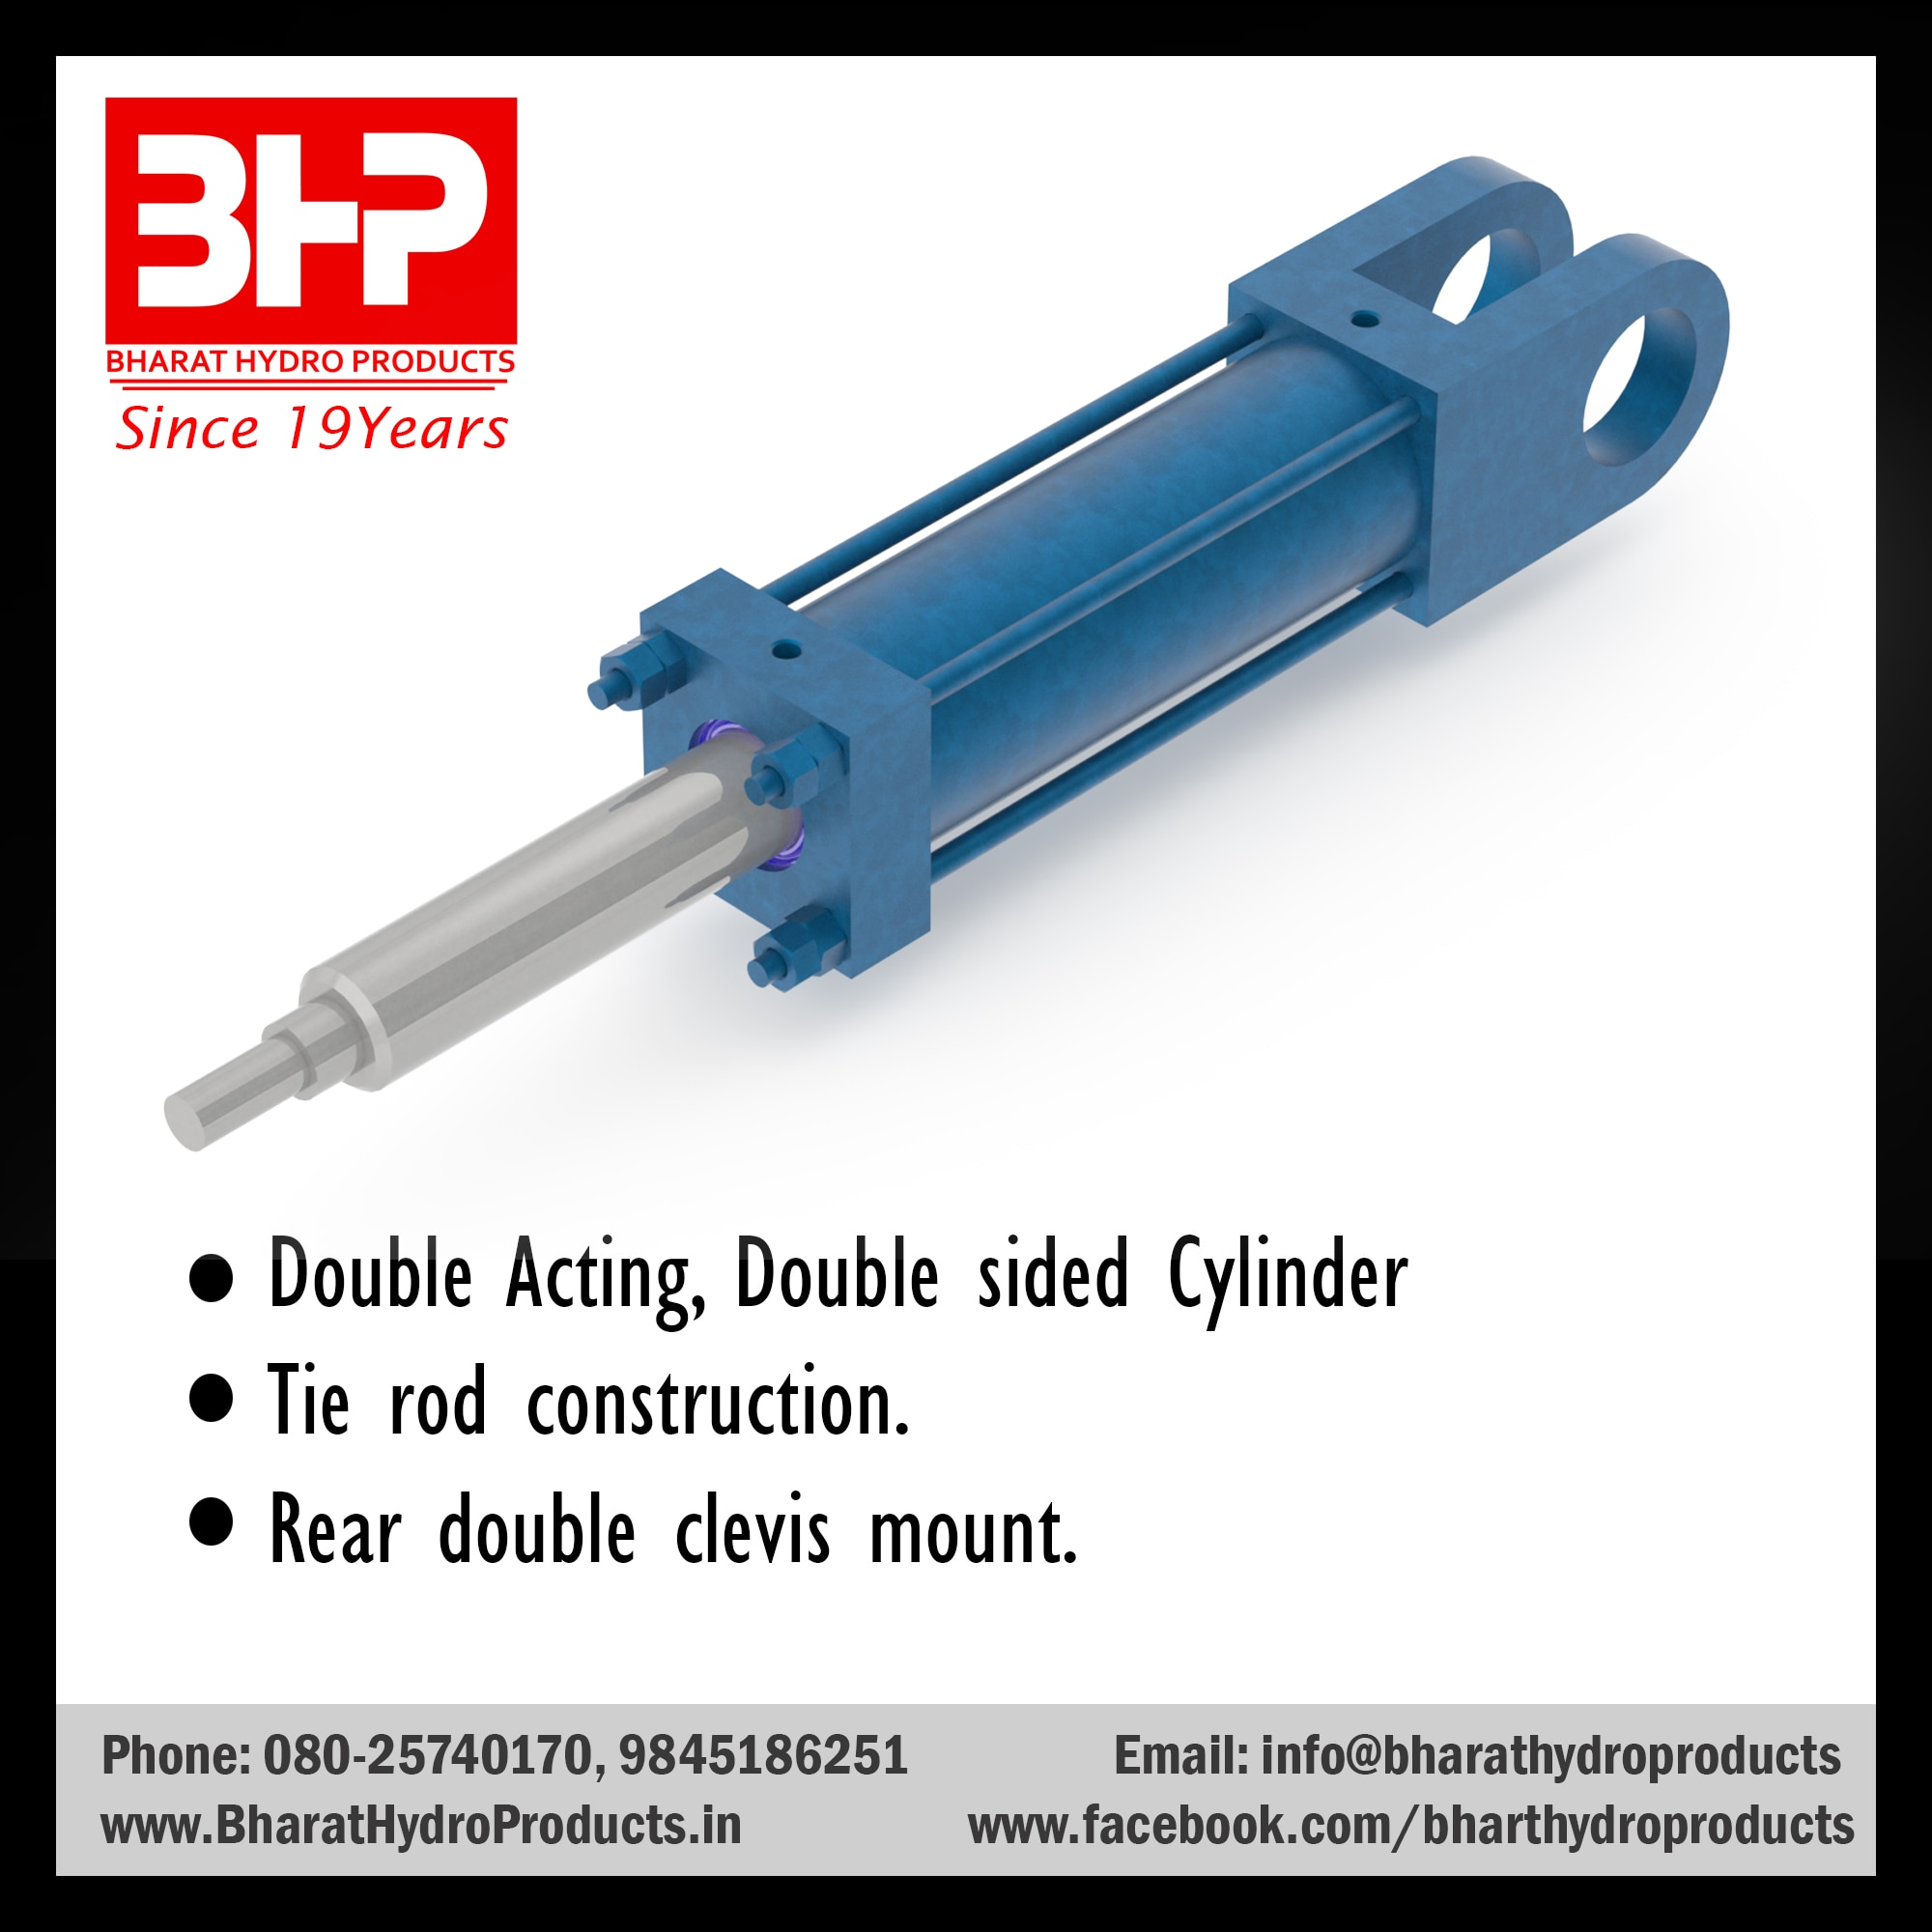 Double Acting, Double sided Cylinder manufacturer in Bangalore. Tie rod construction cylinder manufacturer in Bangalore. Rear double clevis mount cylinder manufacturer in Bangalore.